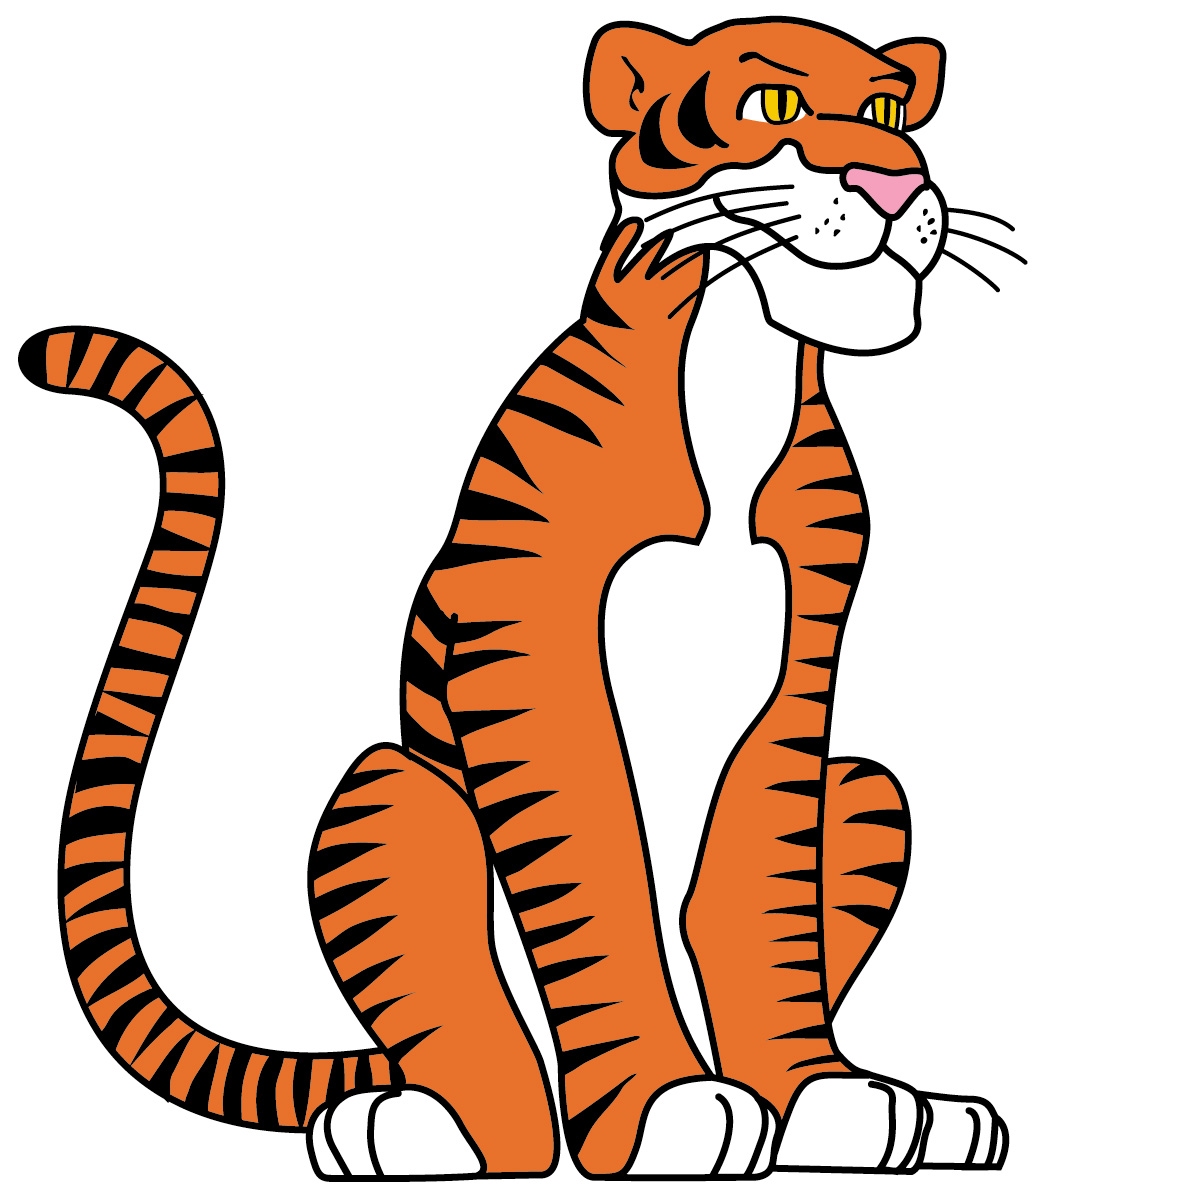 Free Animal Clipart Images - ClipArt Best